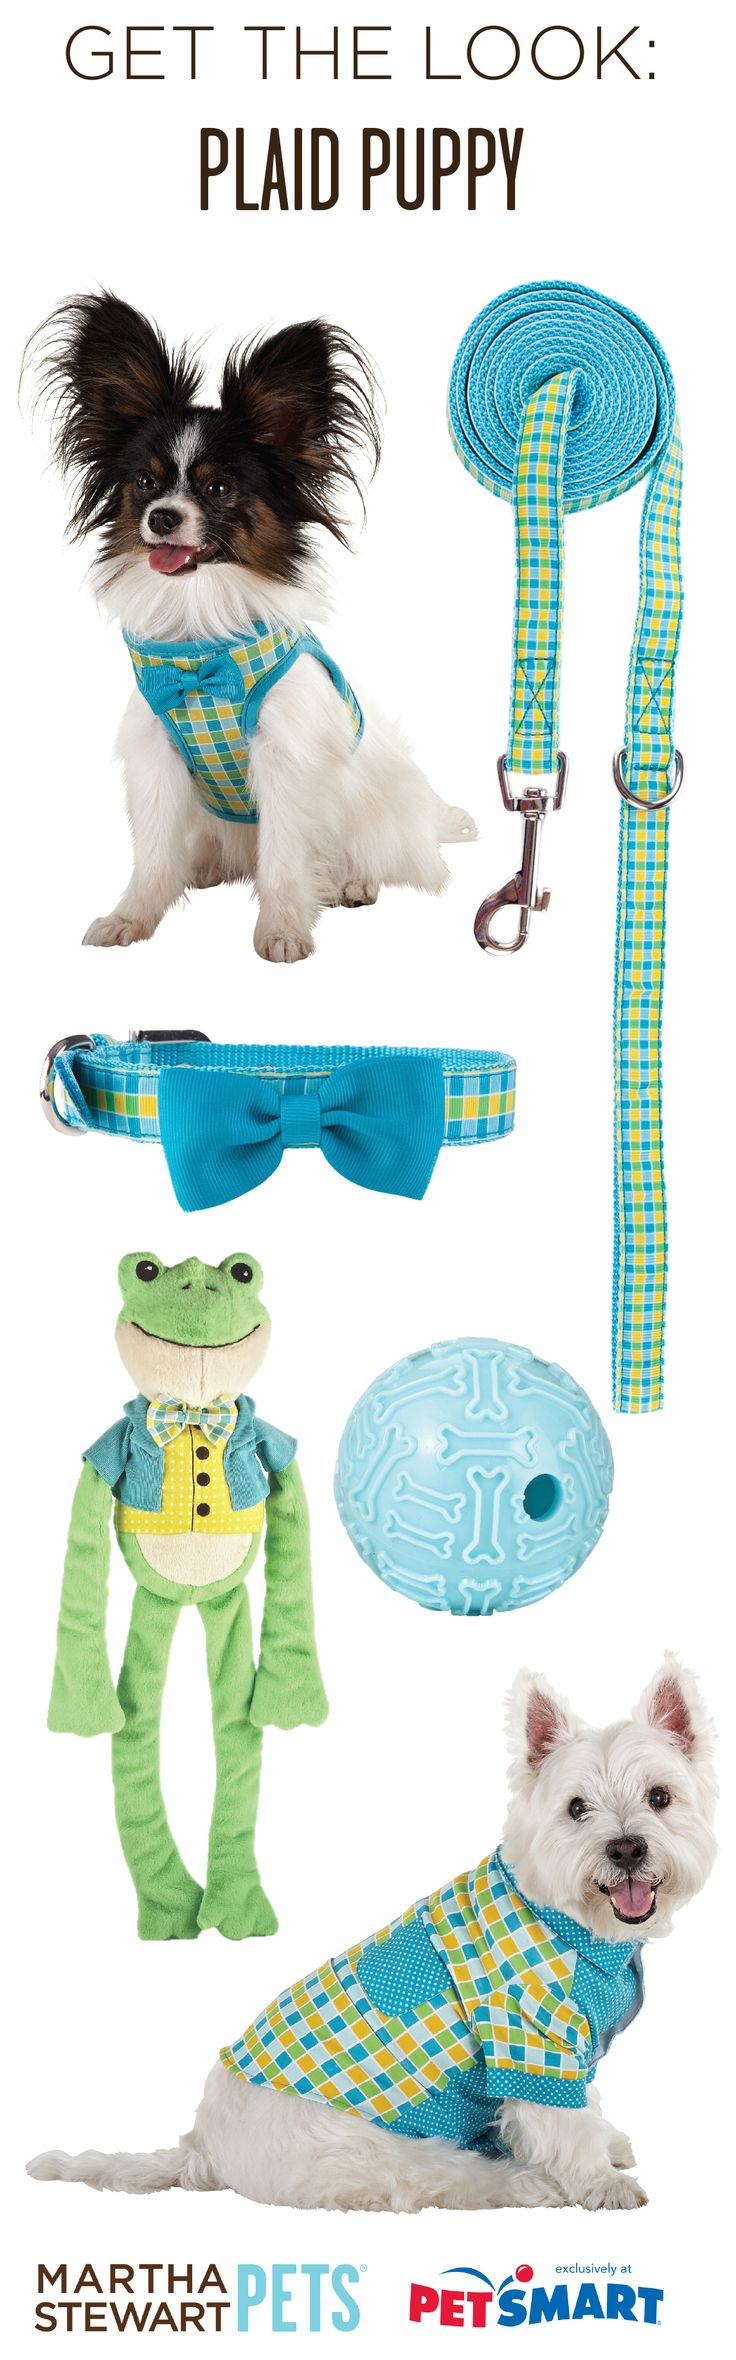 Get The Look: Plaid Puppy with #MarthaStewartPets at #PetSmart! #preppyBows Ties, Bow Ties, Plaid Puppies, Doggies Animal, Jordans Brown, Puppies Jordans, Westies Westies Babies